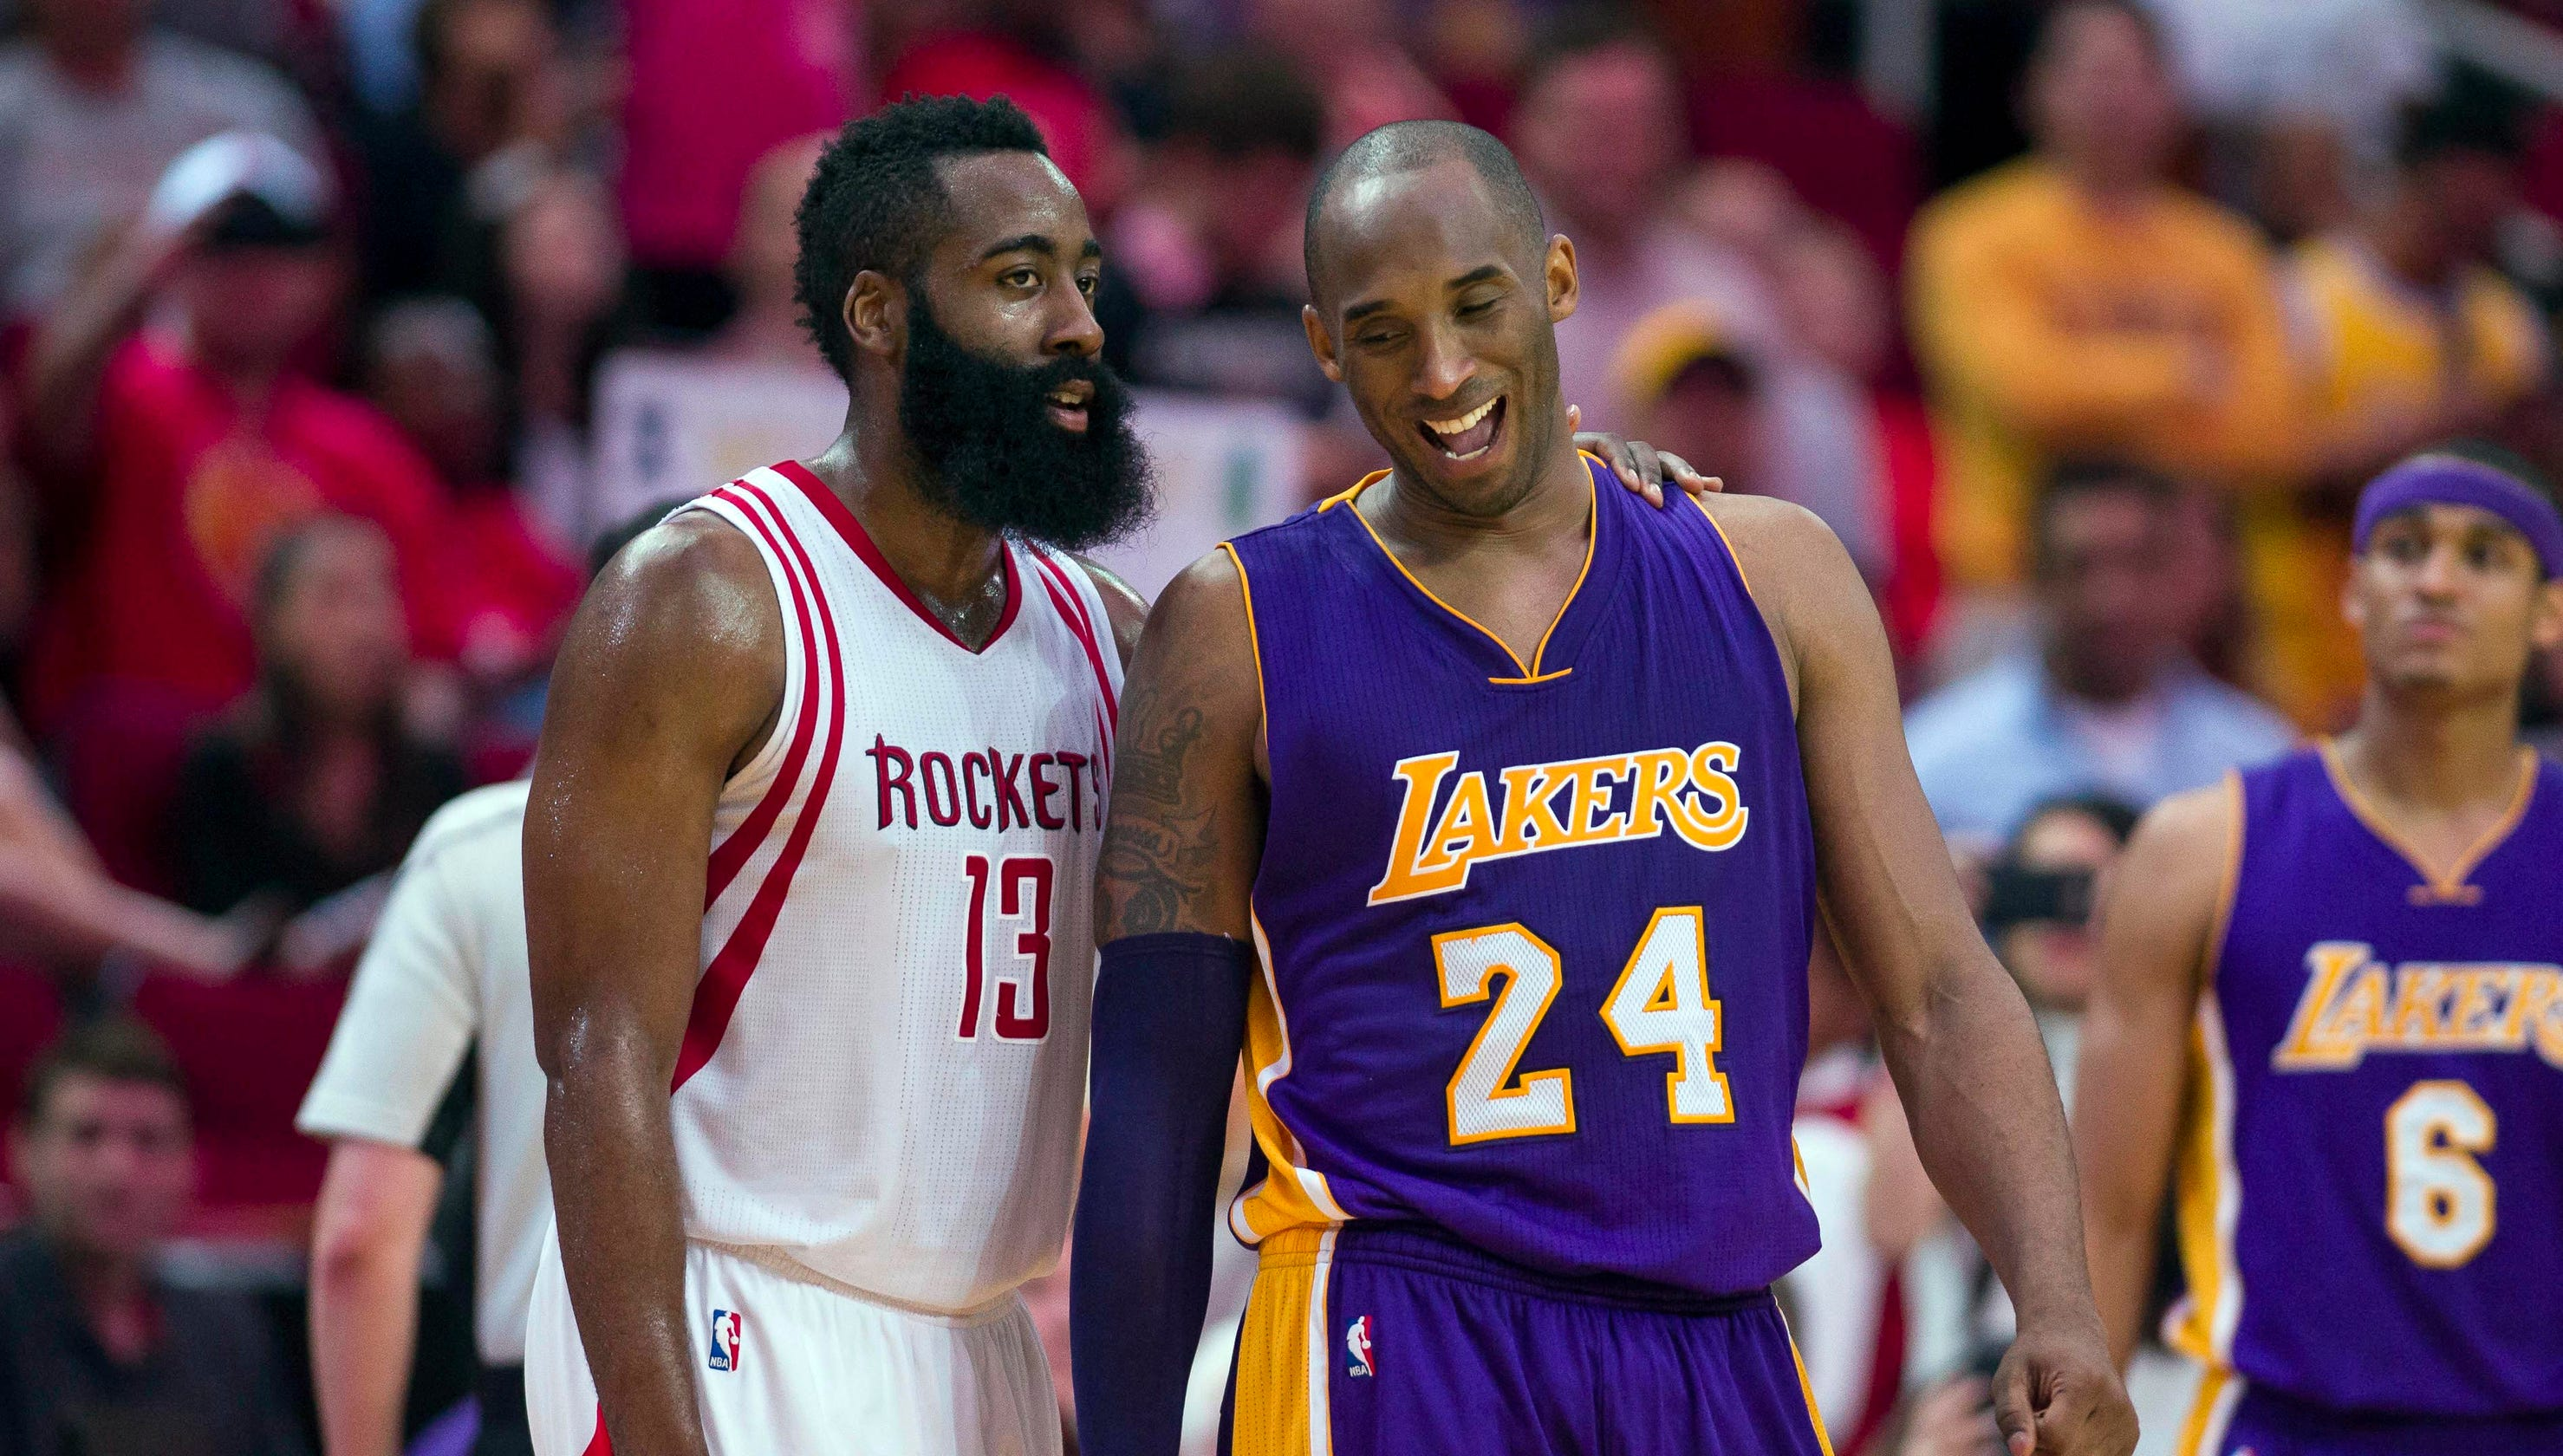 aa01461fcbc Kobe Bryant: Rockets can't win championship with James Harden dominating  ball